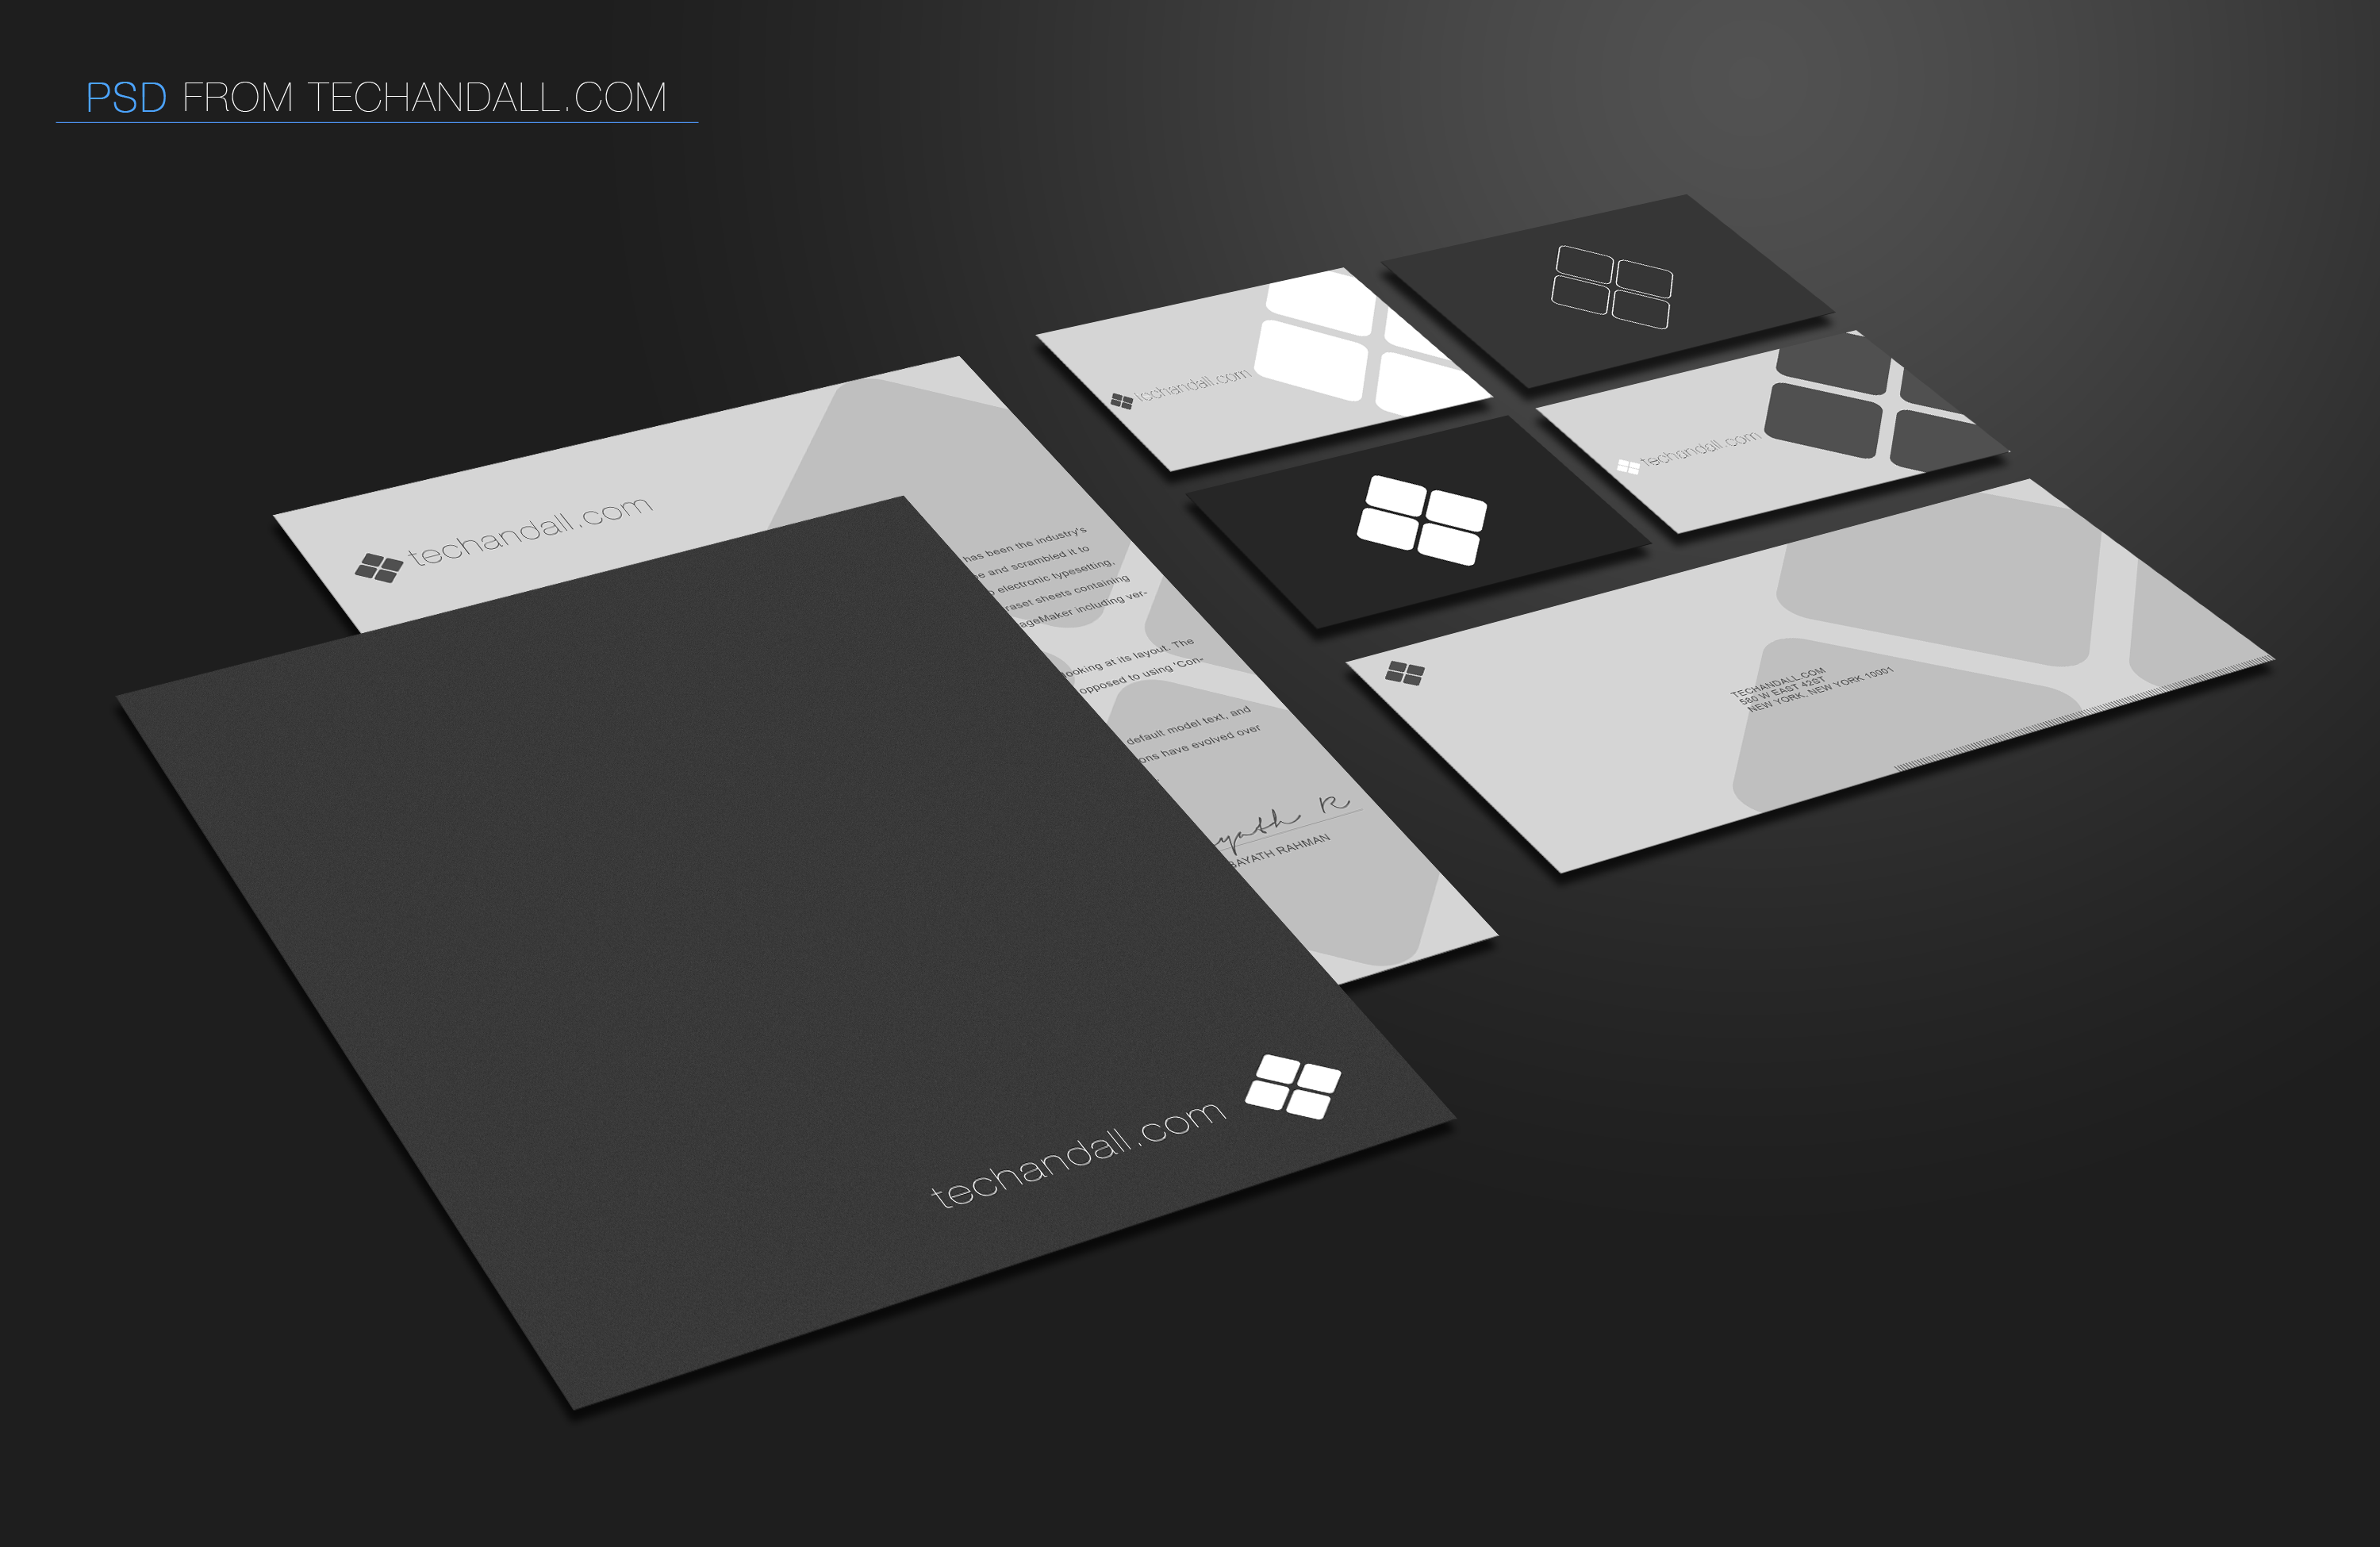 techandall_Stationery_Mock_Up_Collection_Xi_L